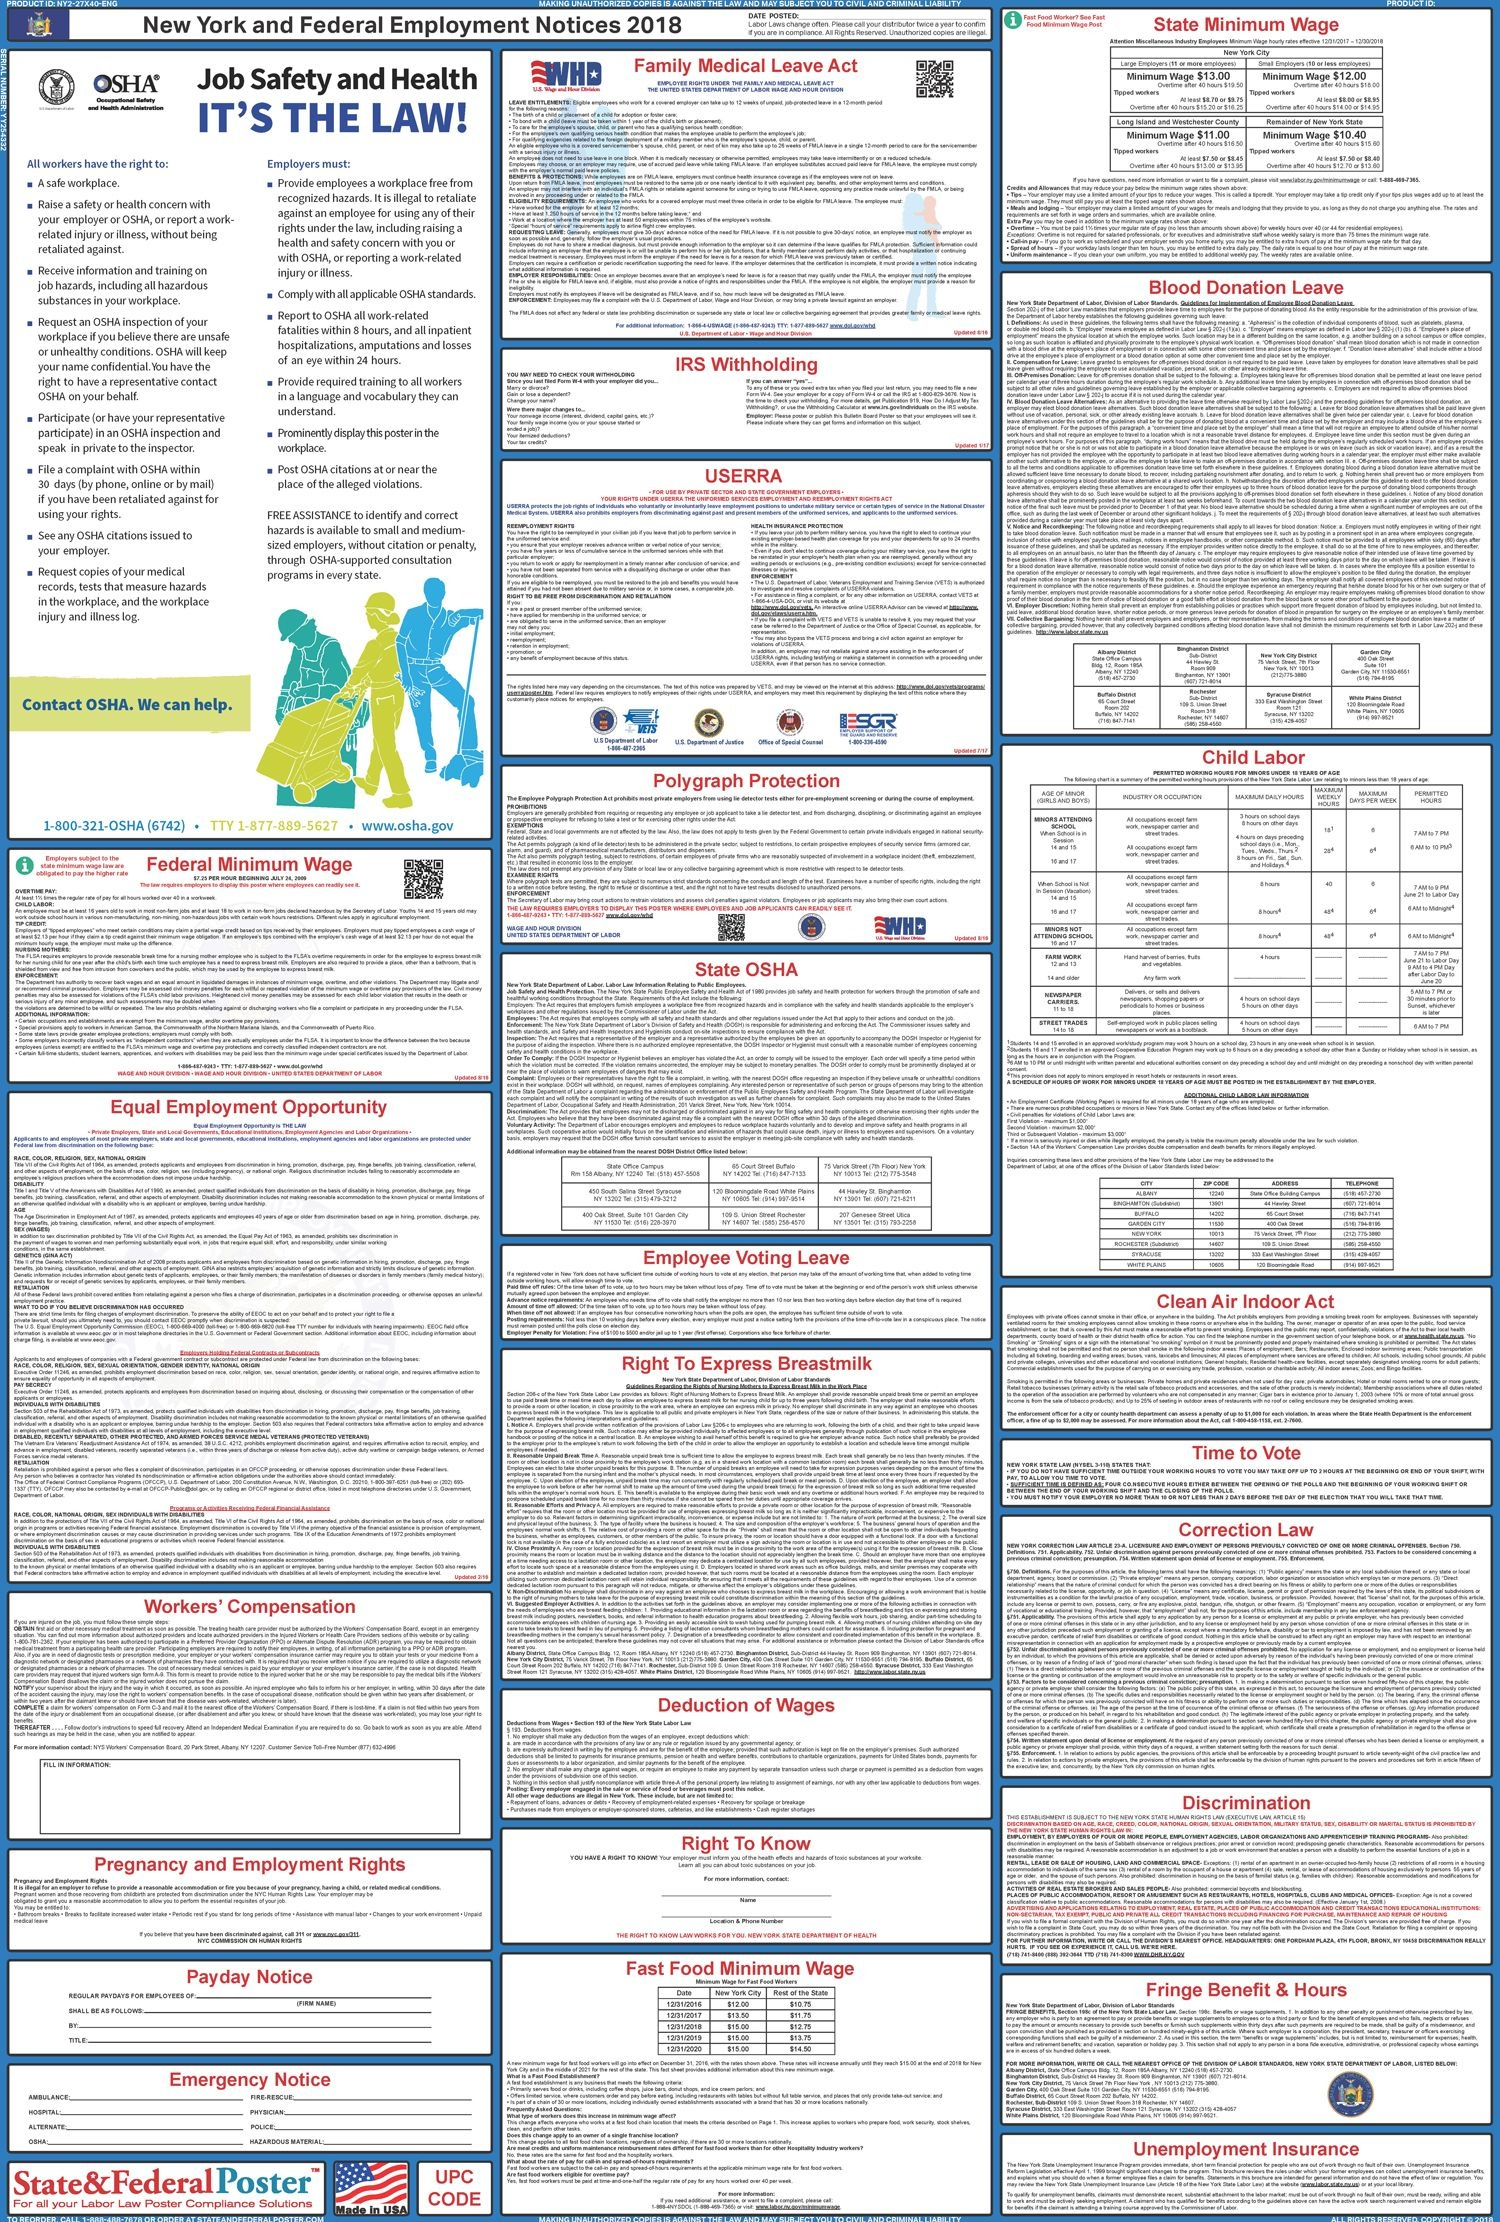 New York State And Federal Labor Law Poster 2019 | State & Federal - Free Printable Osha Posters